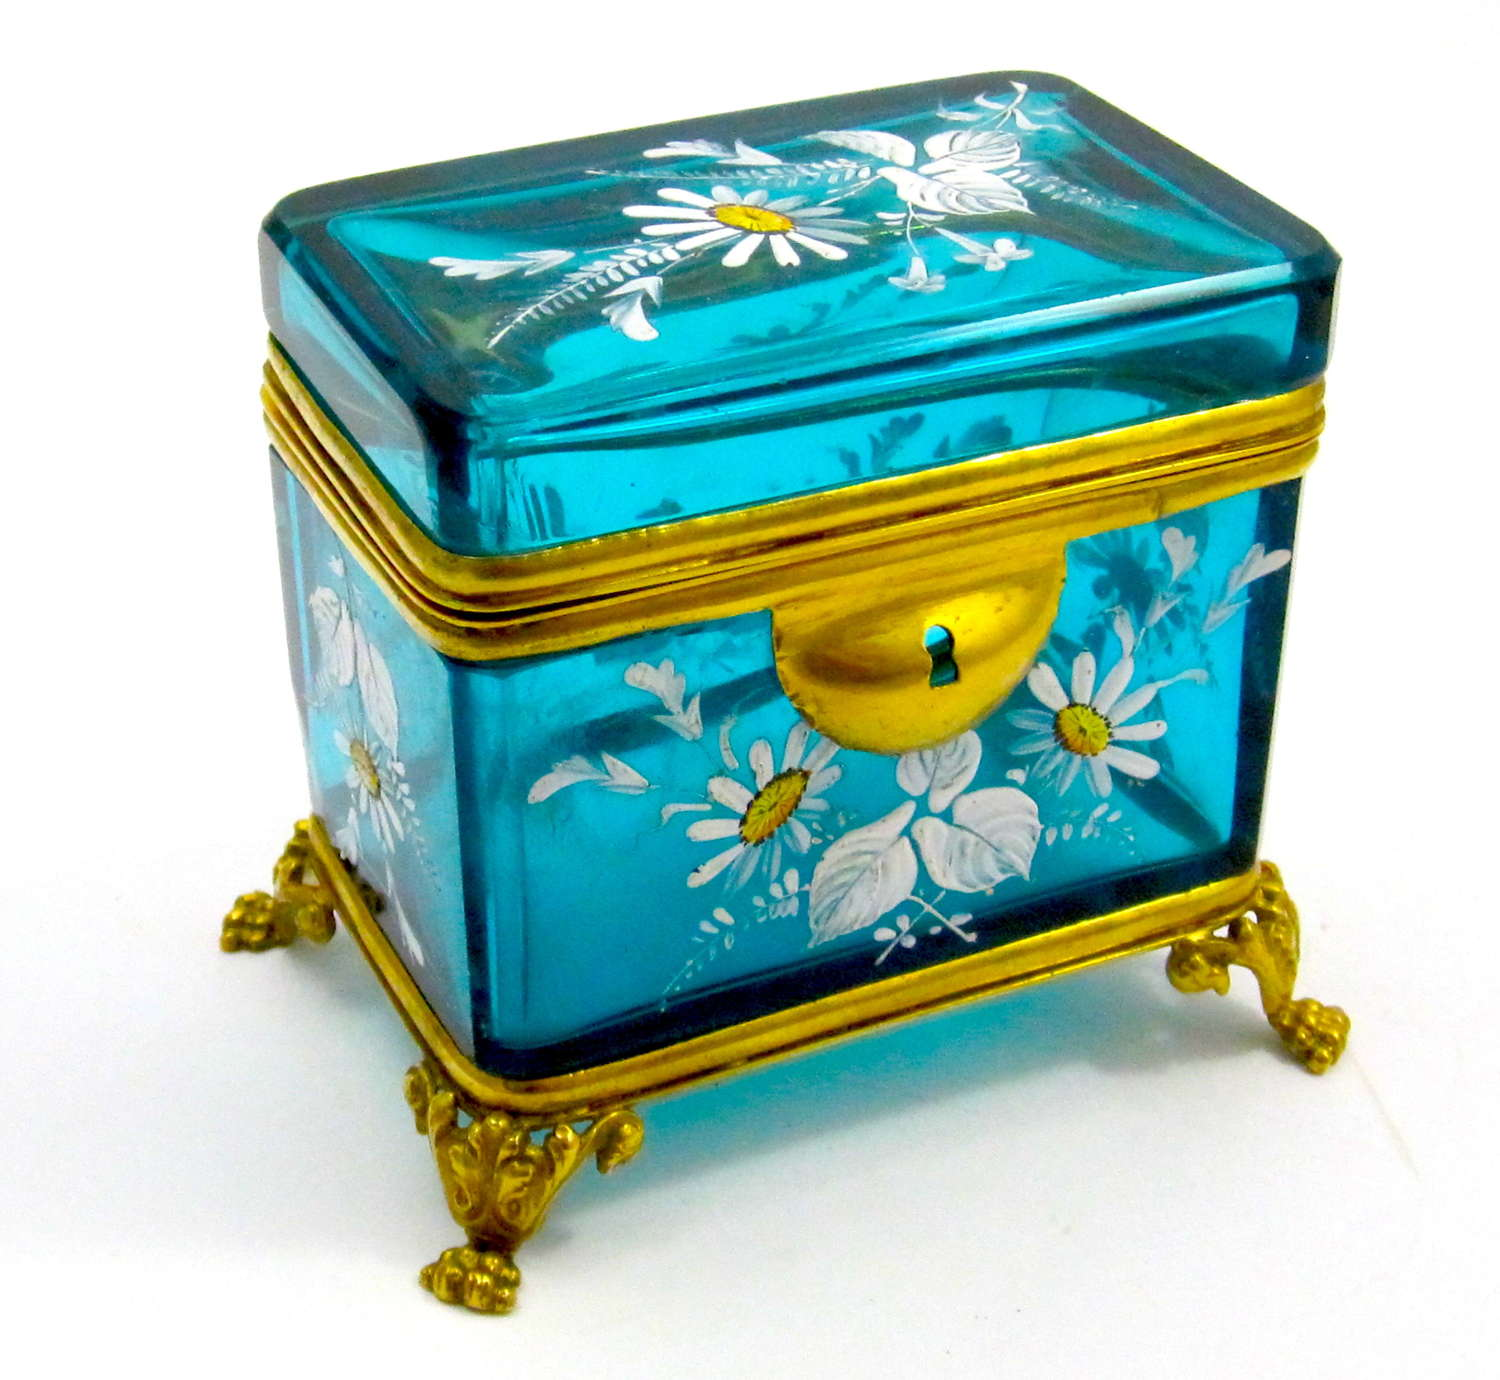 Antique Bohemian TurquoiseCasket Box Enamelled with DaisiesFlowers